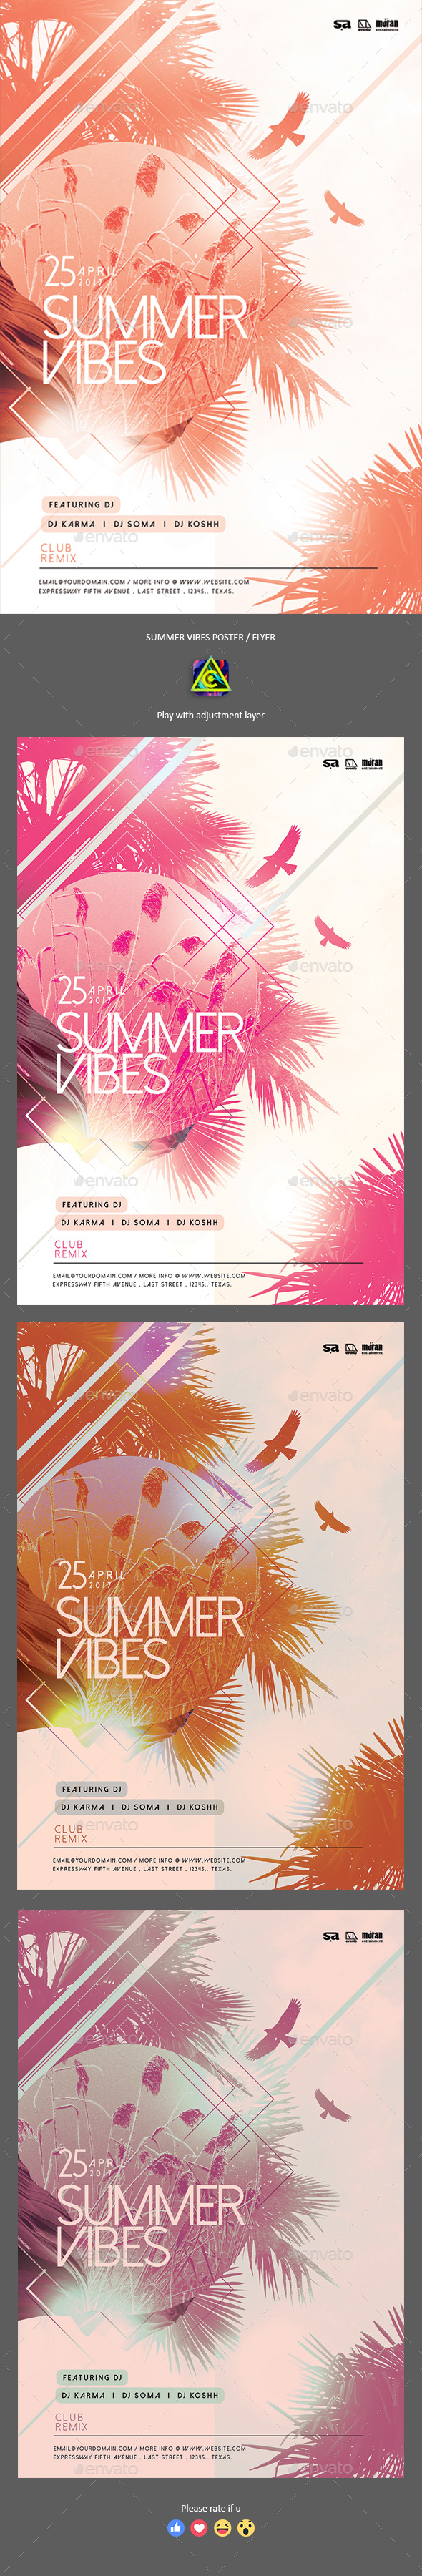 Summer Vibes Poster / Flyer - Clubs & Parties Events